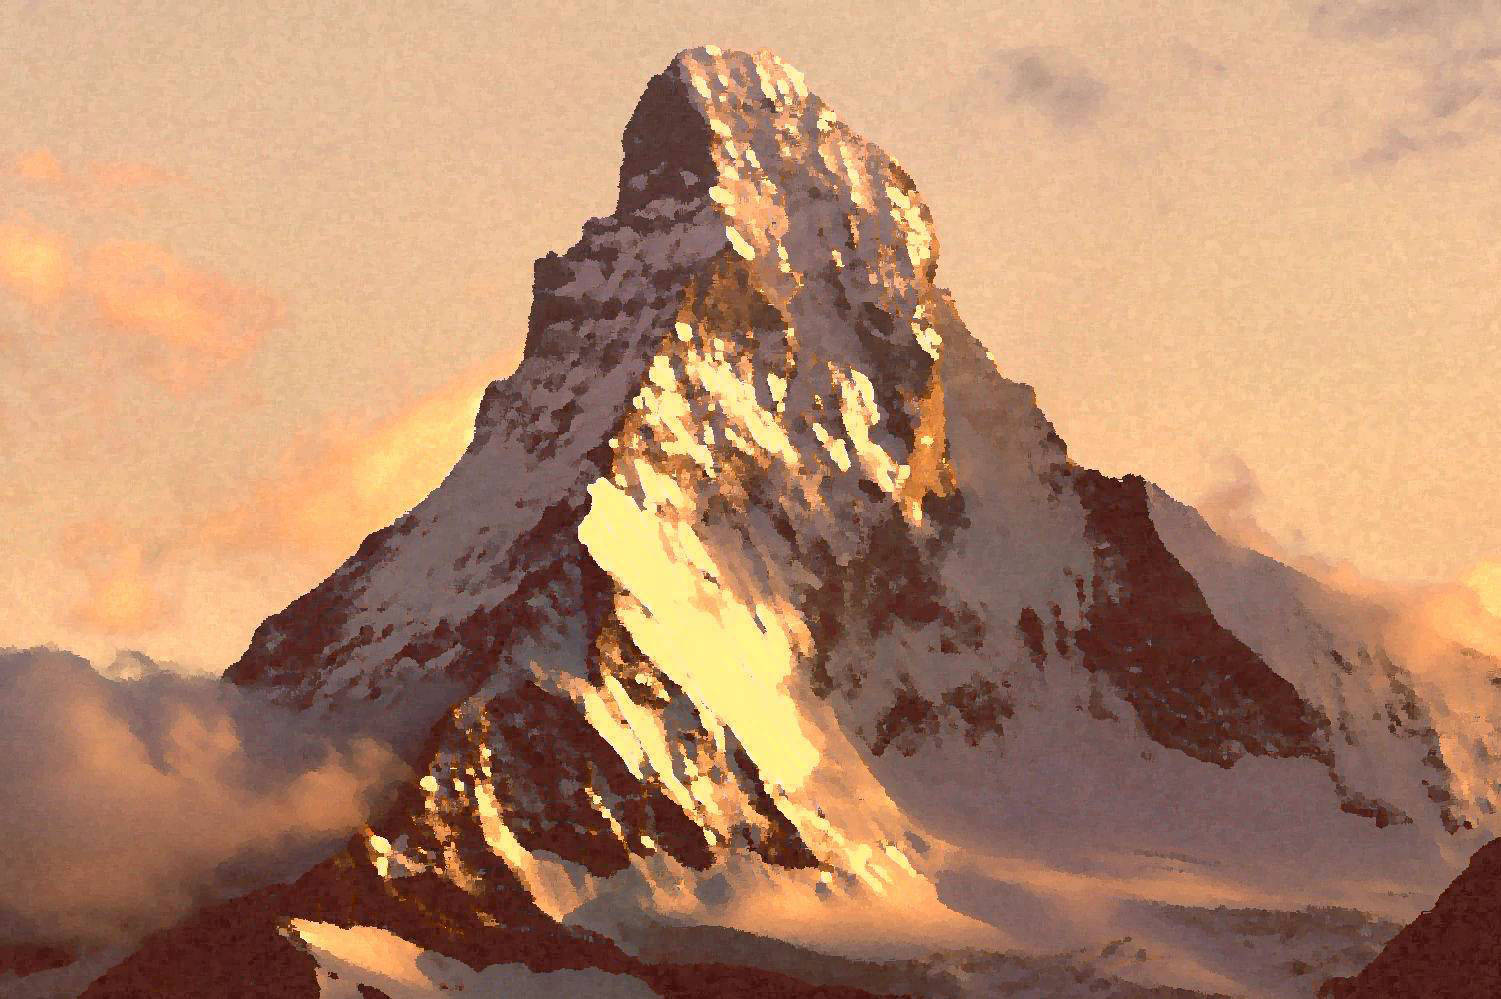 Гора Маттернхорн на закате / Mount Matterhorn at sunset